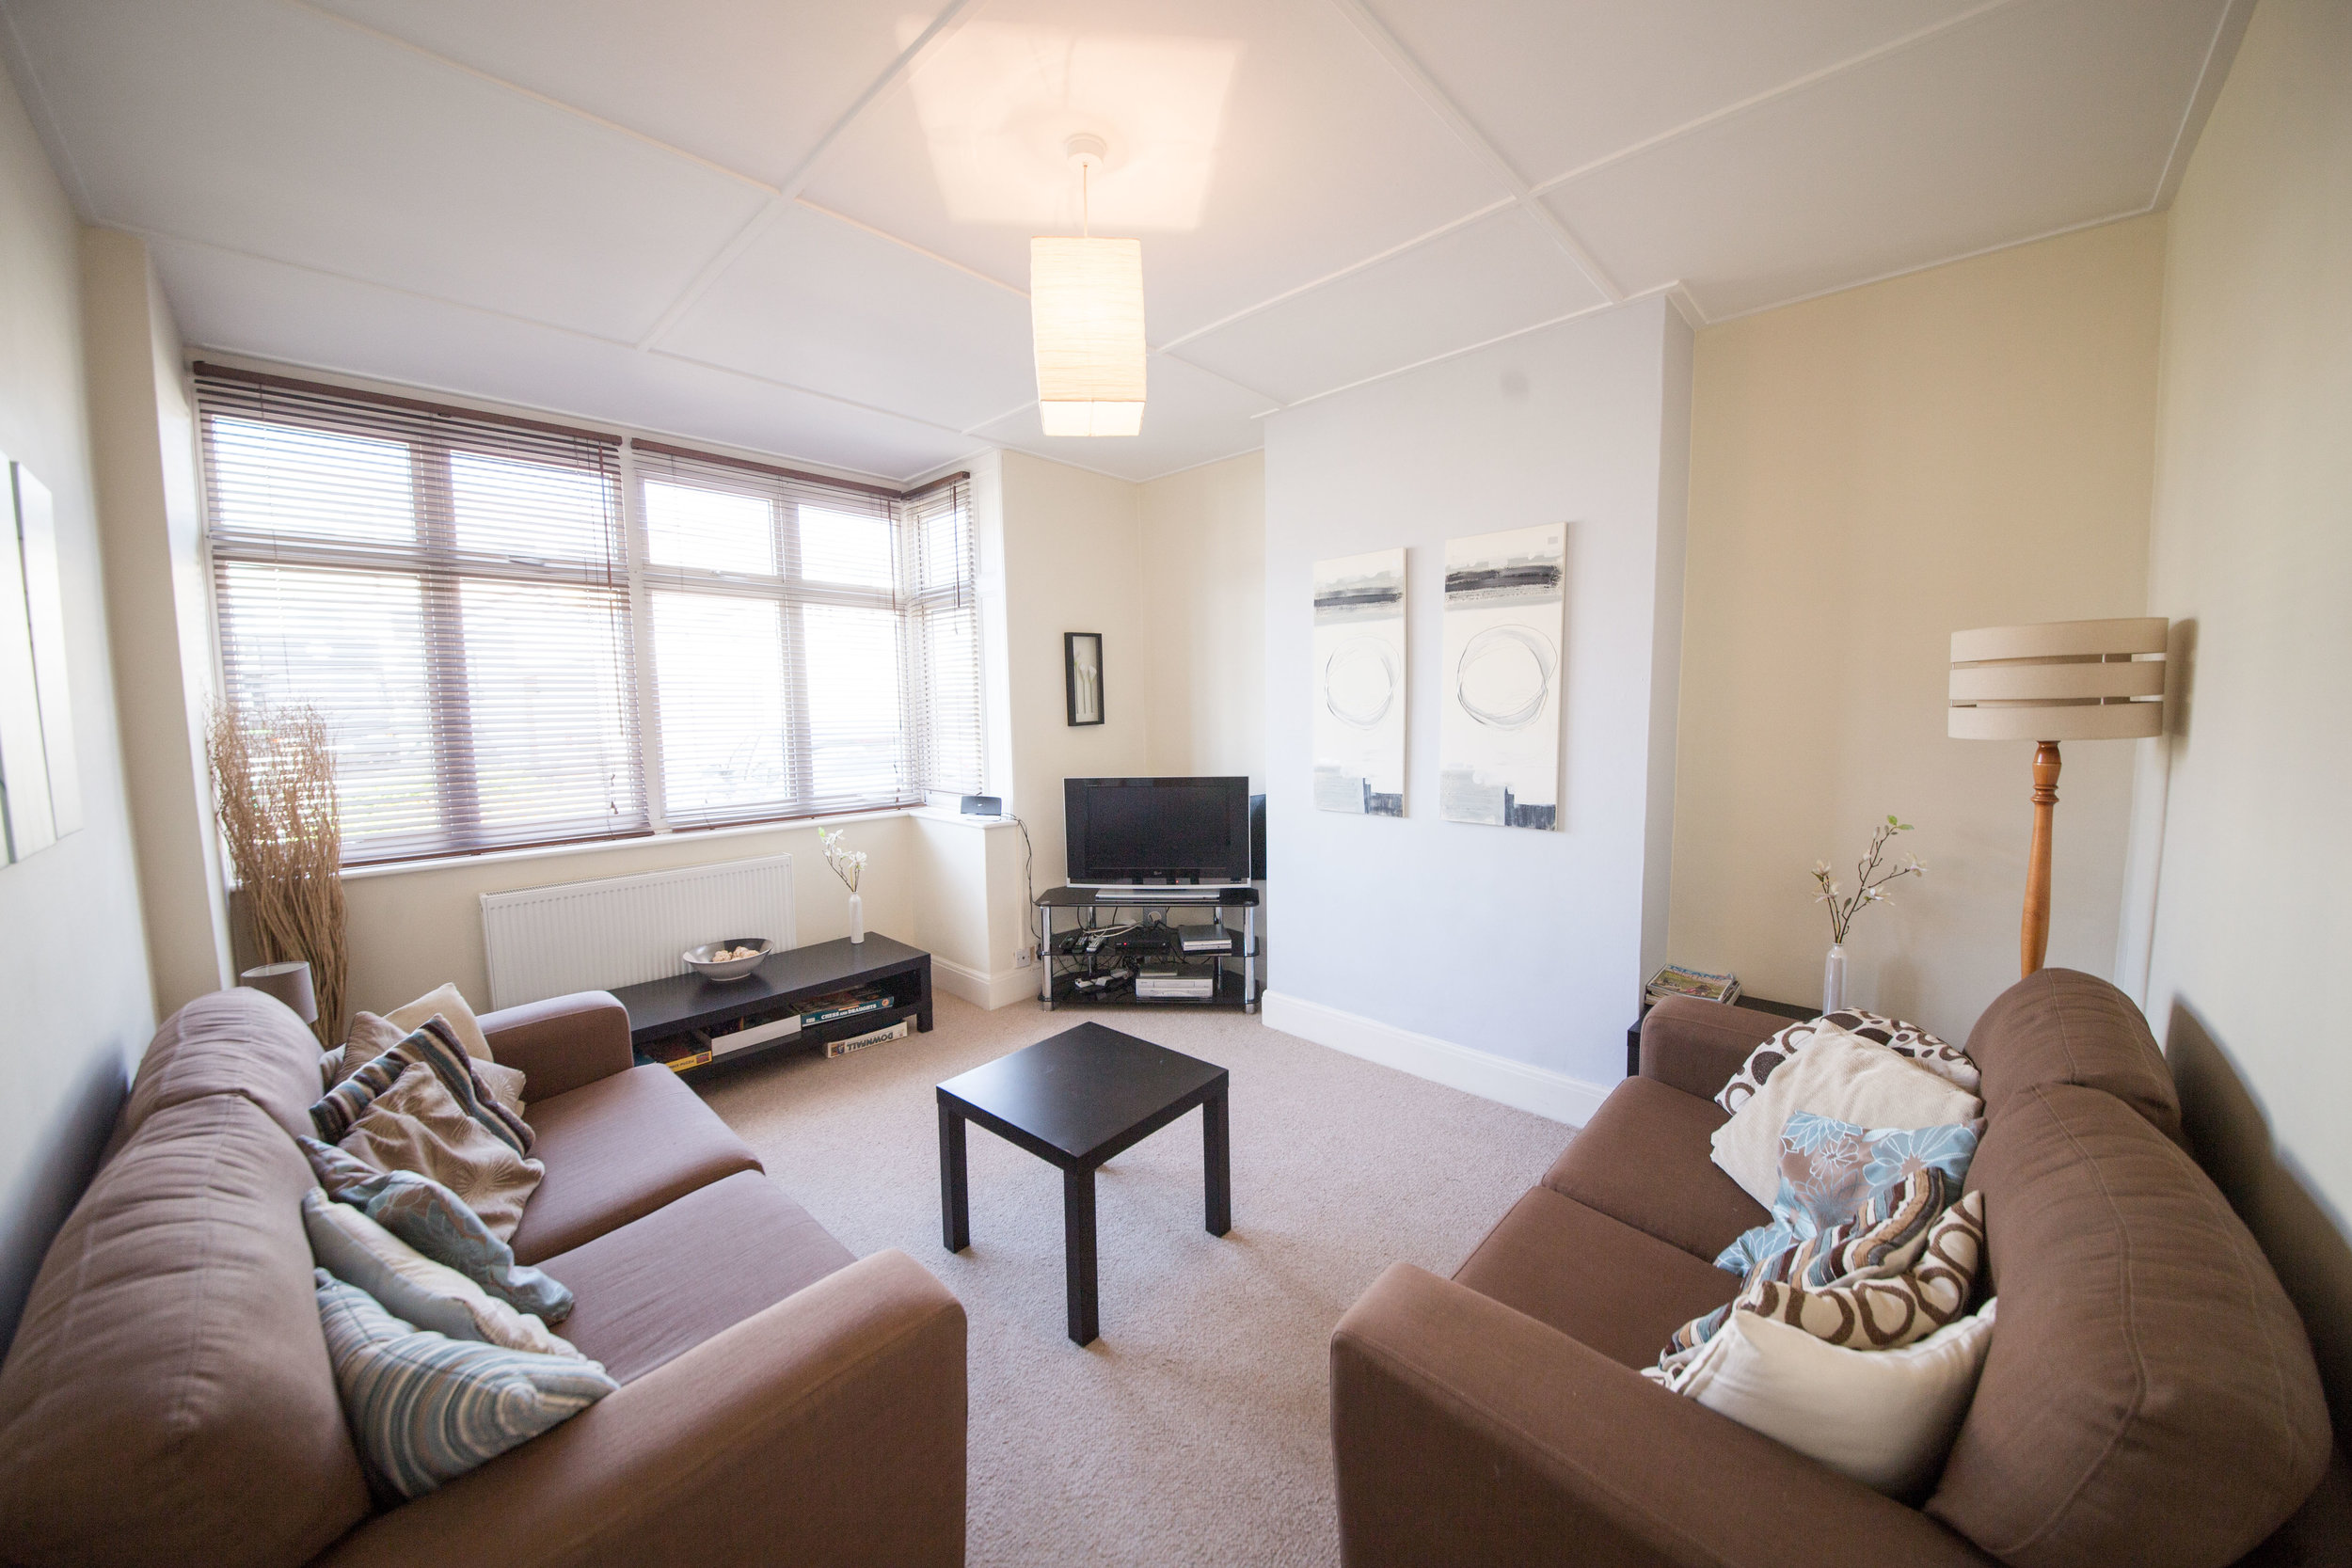 Lounge, 3 Bedroom house Sandown, Isle of Wight